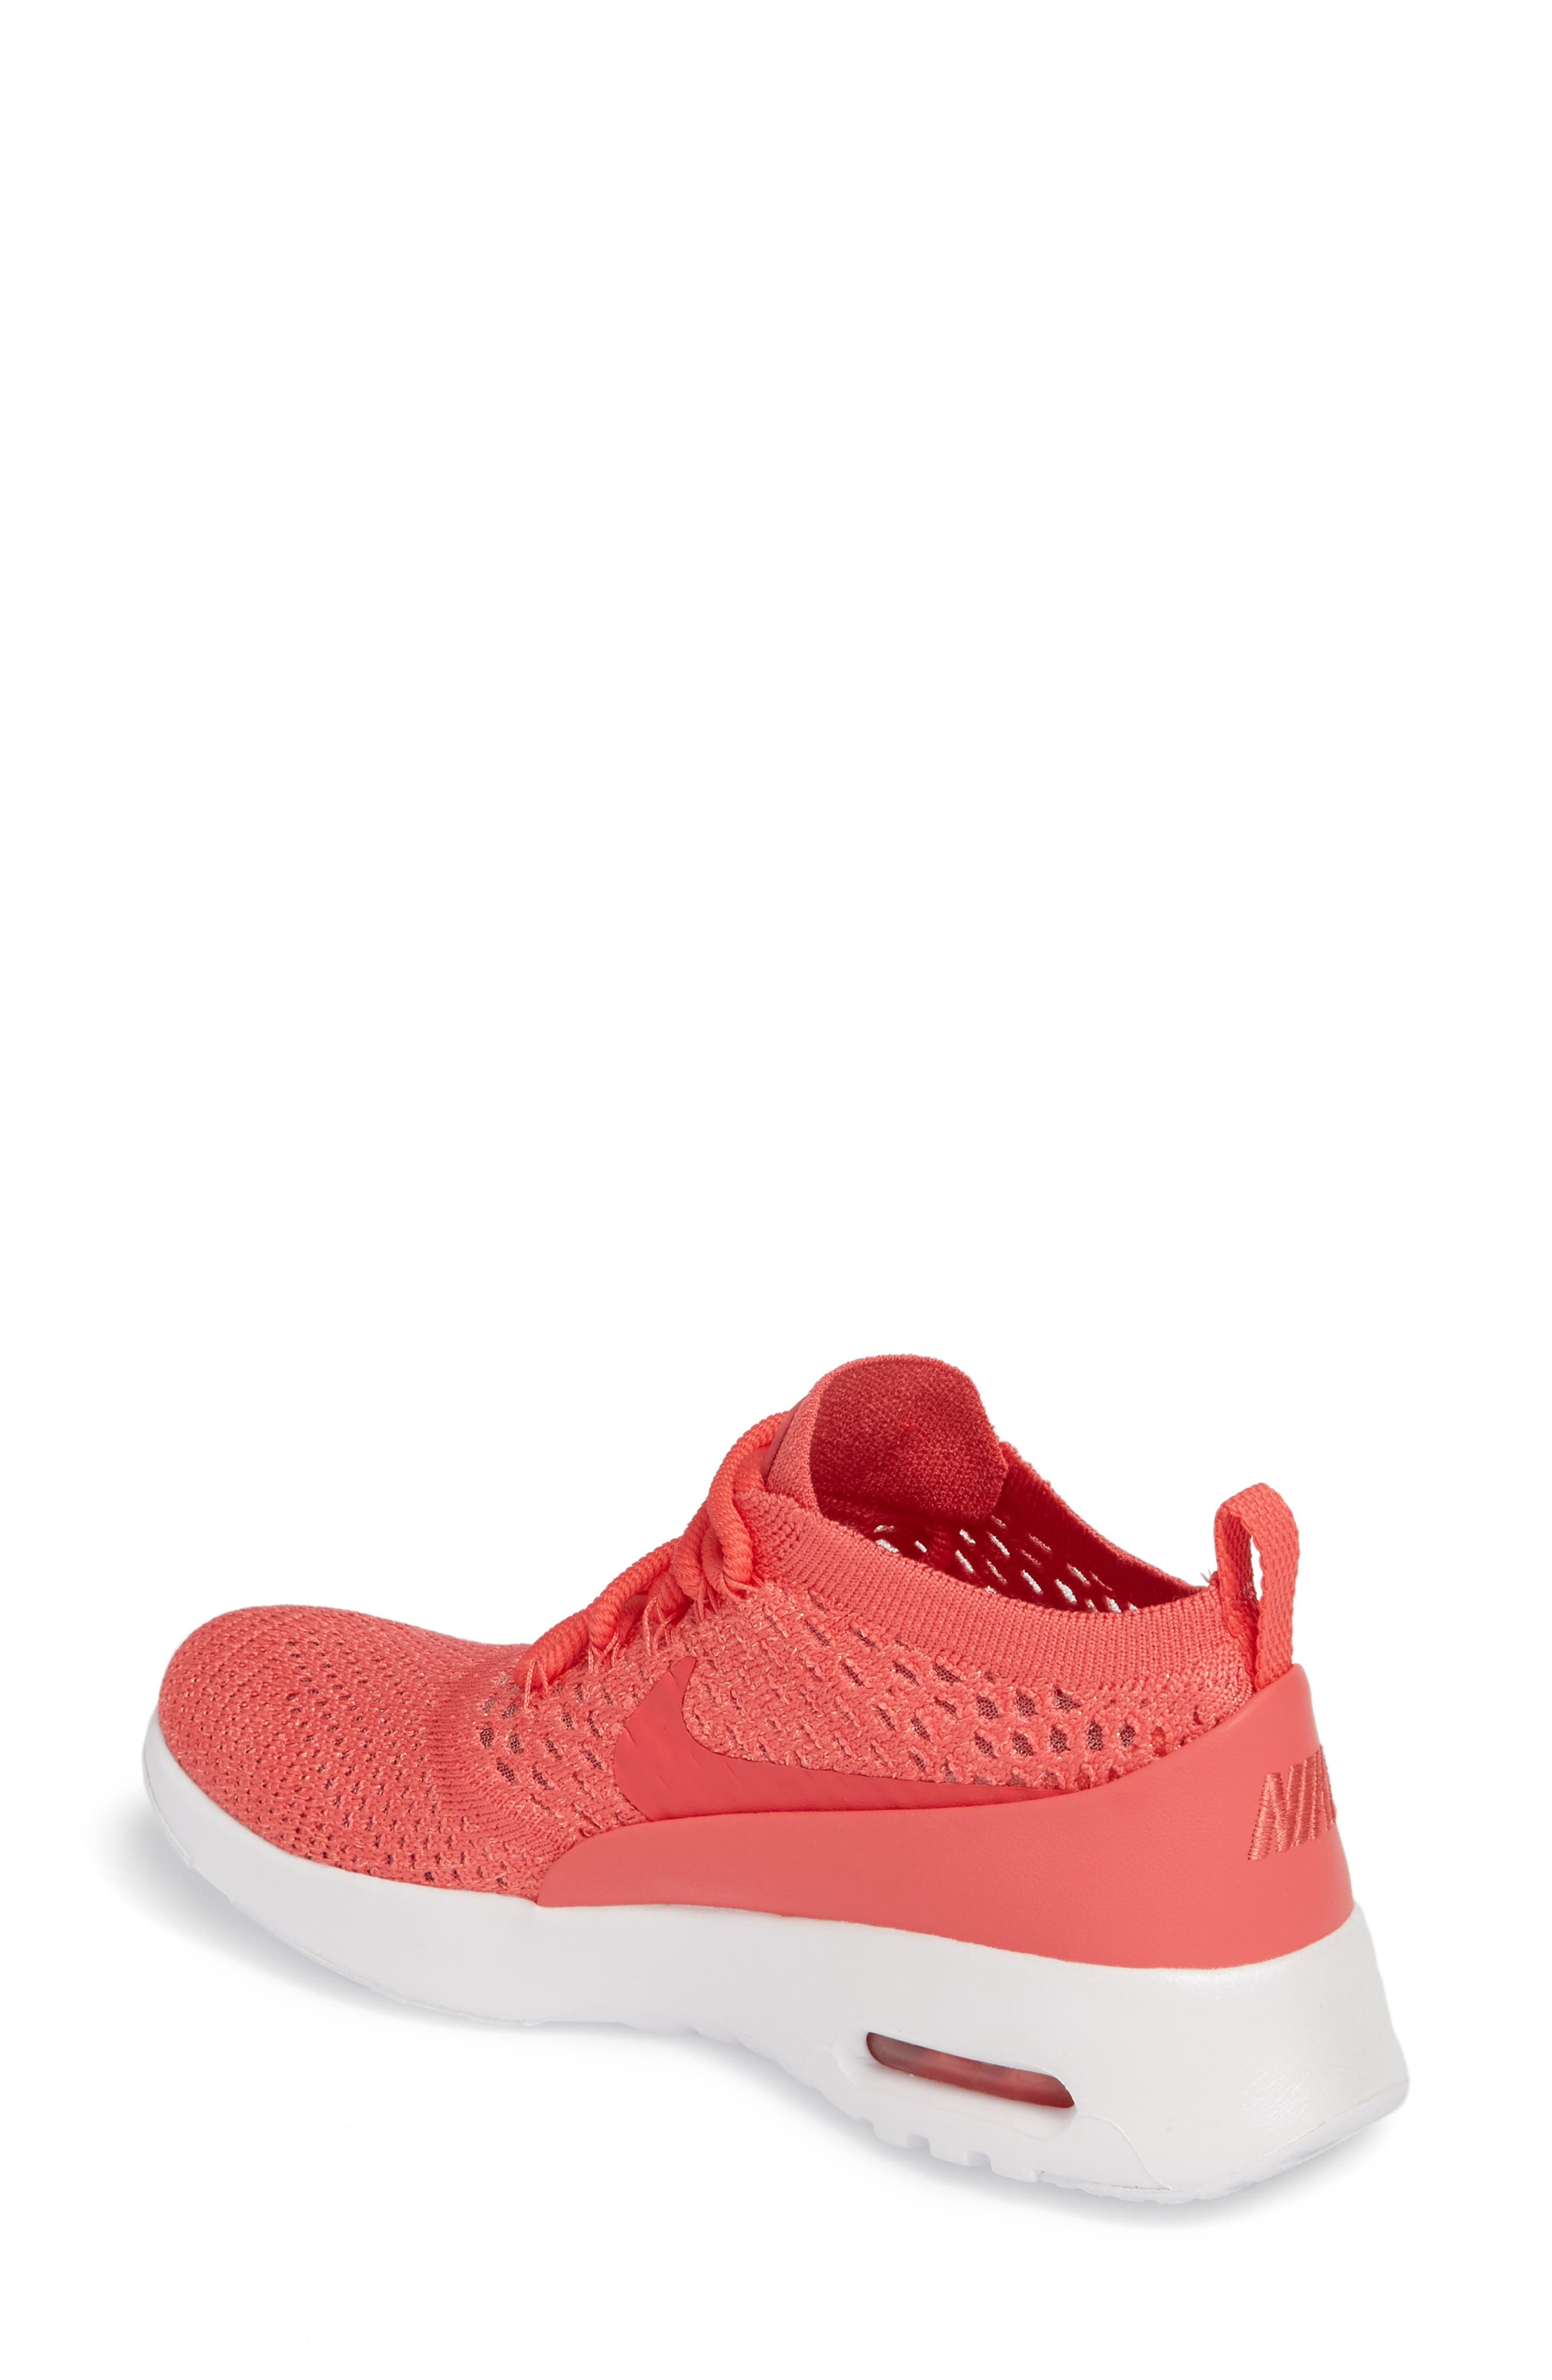 Air Max Thea Ultra Flyknit Sneaker,                             Alternate thumbnail 14, color,